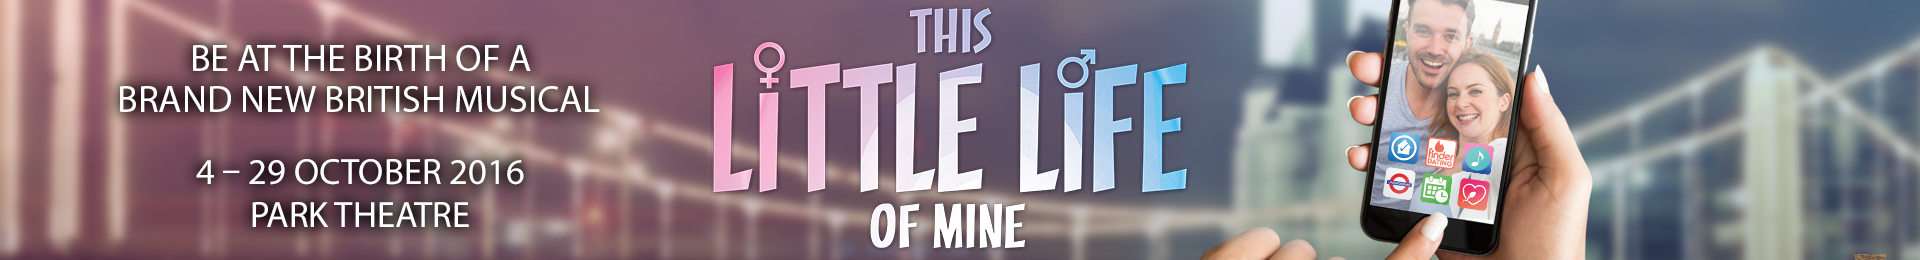 This Little Life of Mine banner image